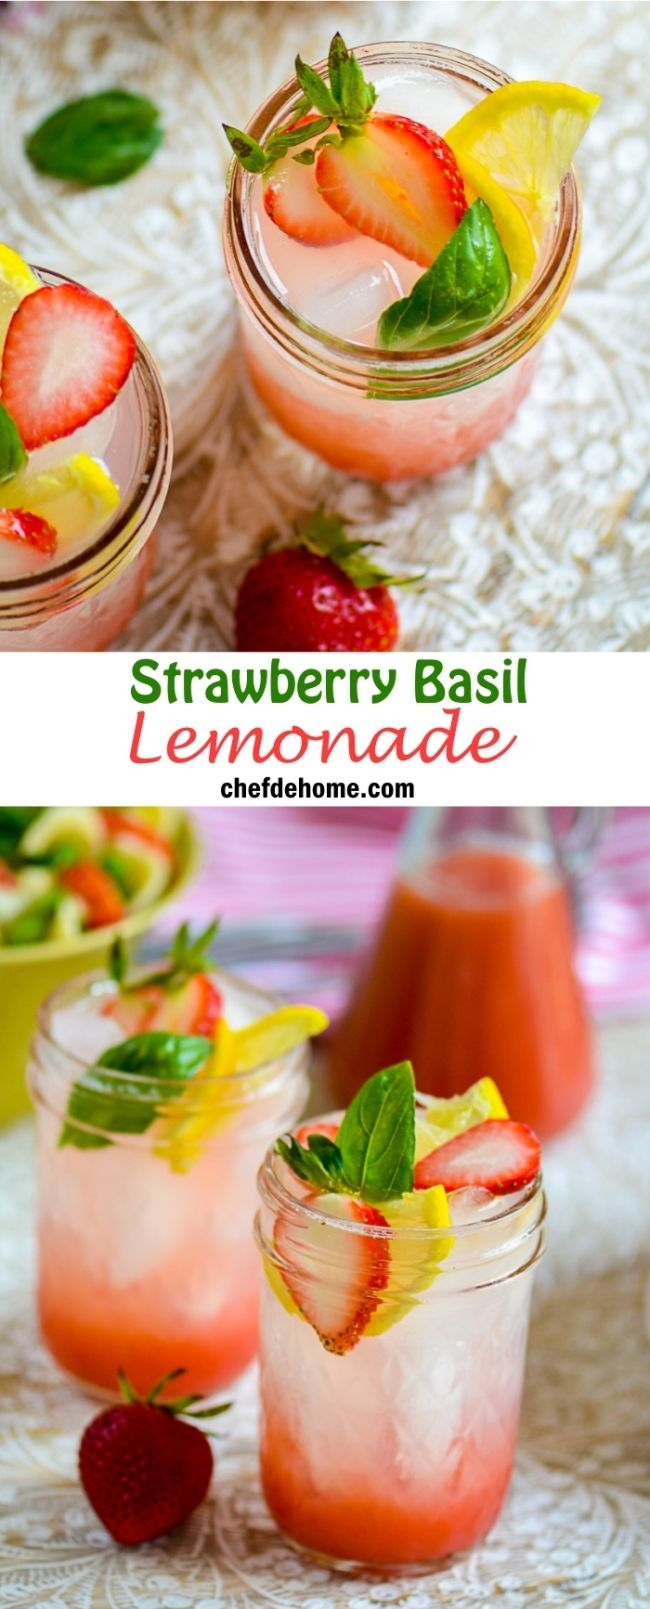 Strawberry Basil Lemonade ~ This easy, refreshing pink lemonade will be the favorite at your next summer party! With just 4 basic ingredients! And, it makes a lot of concentrate, which you make once and use many times! ~ from chefdehome.com